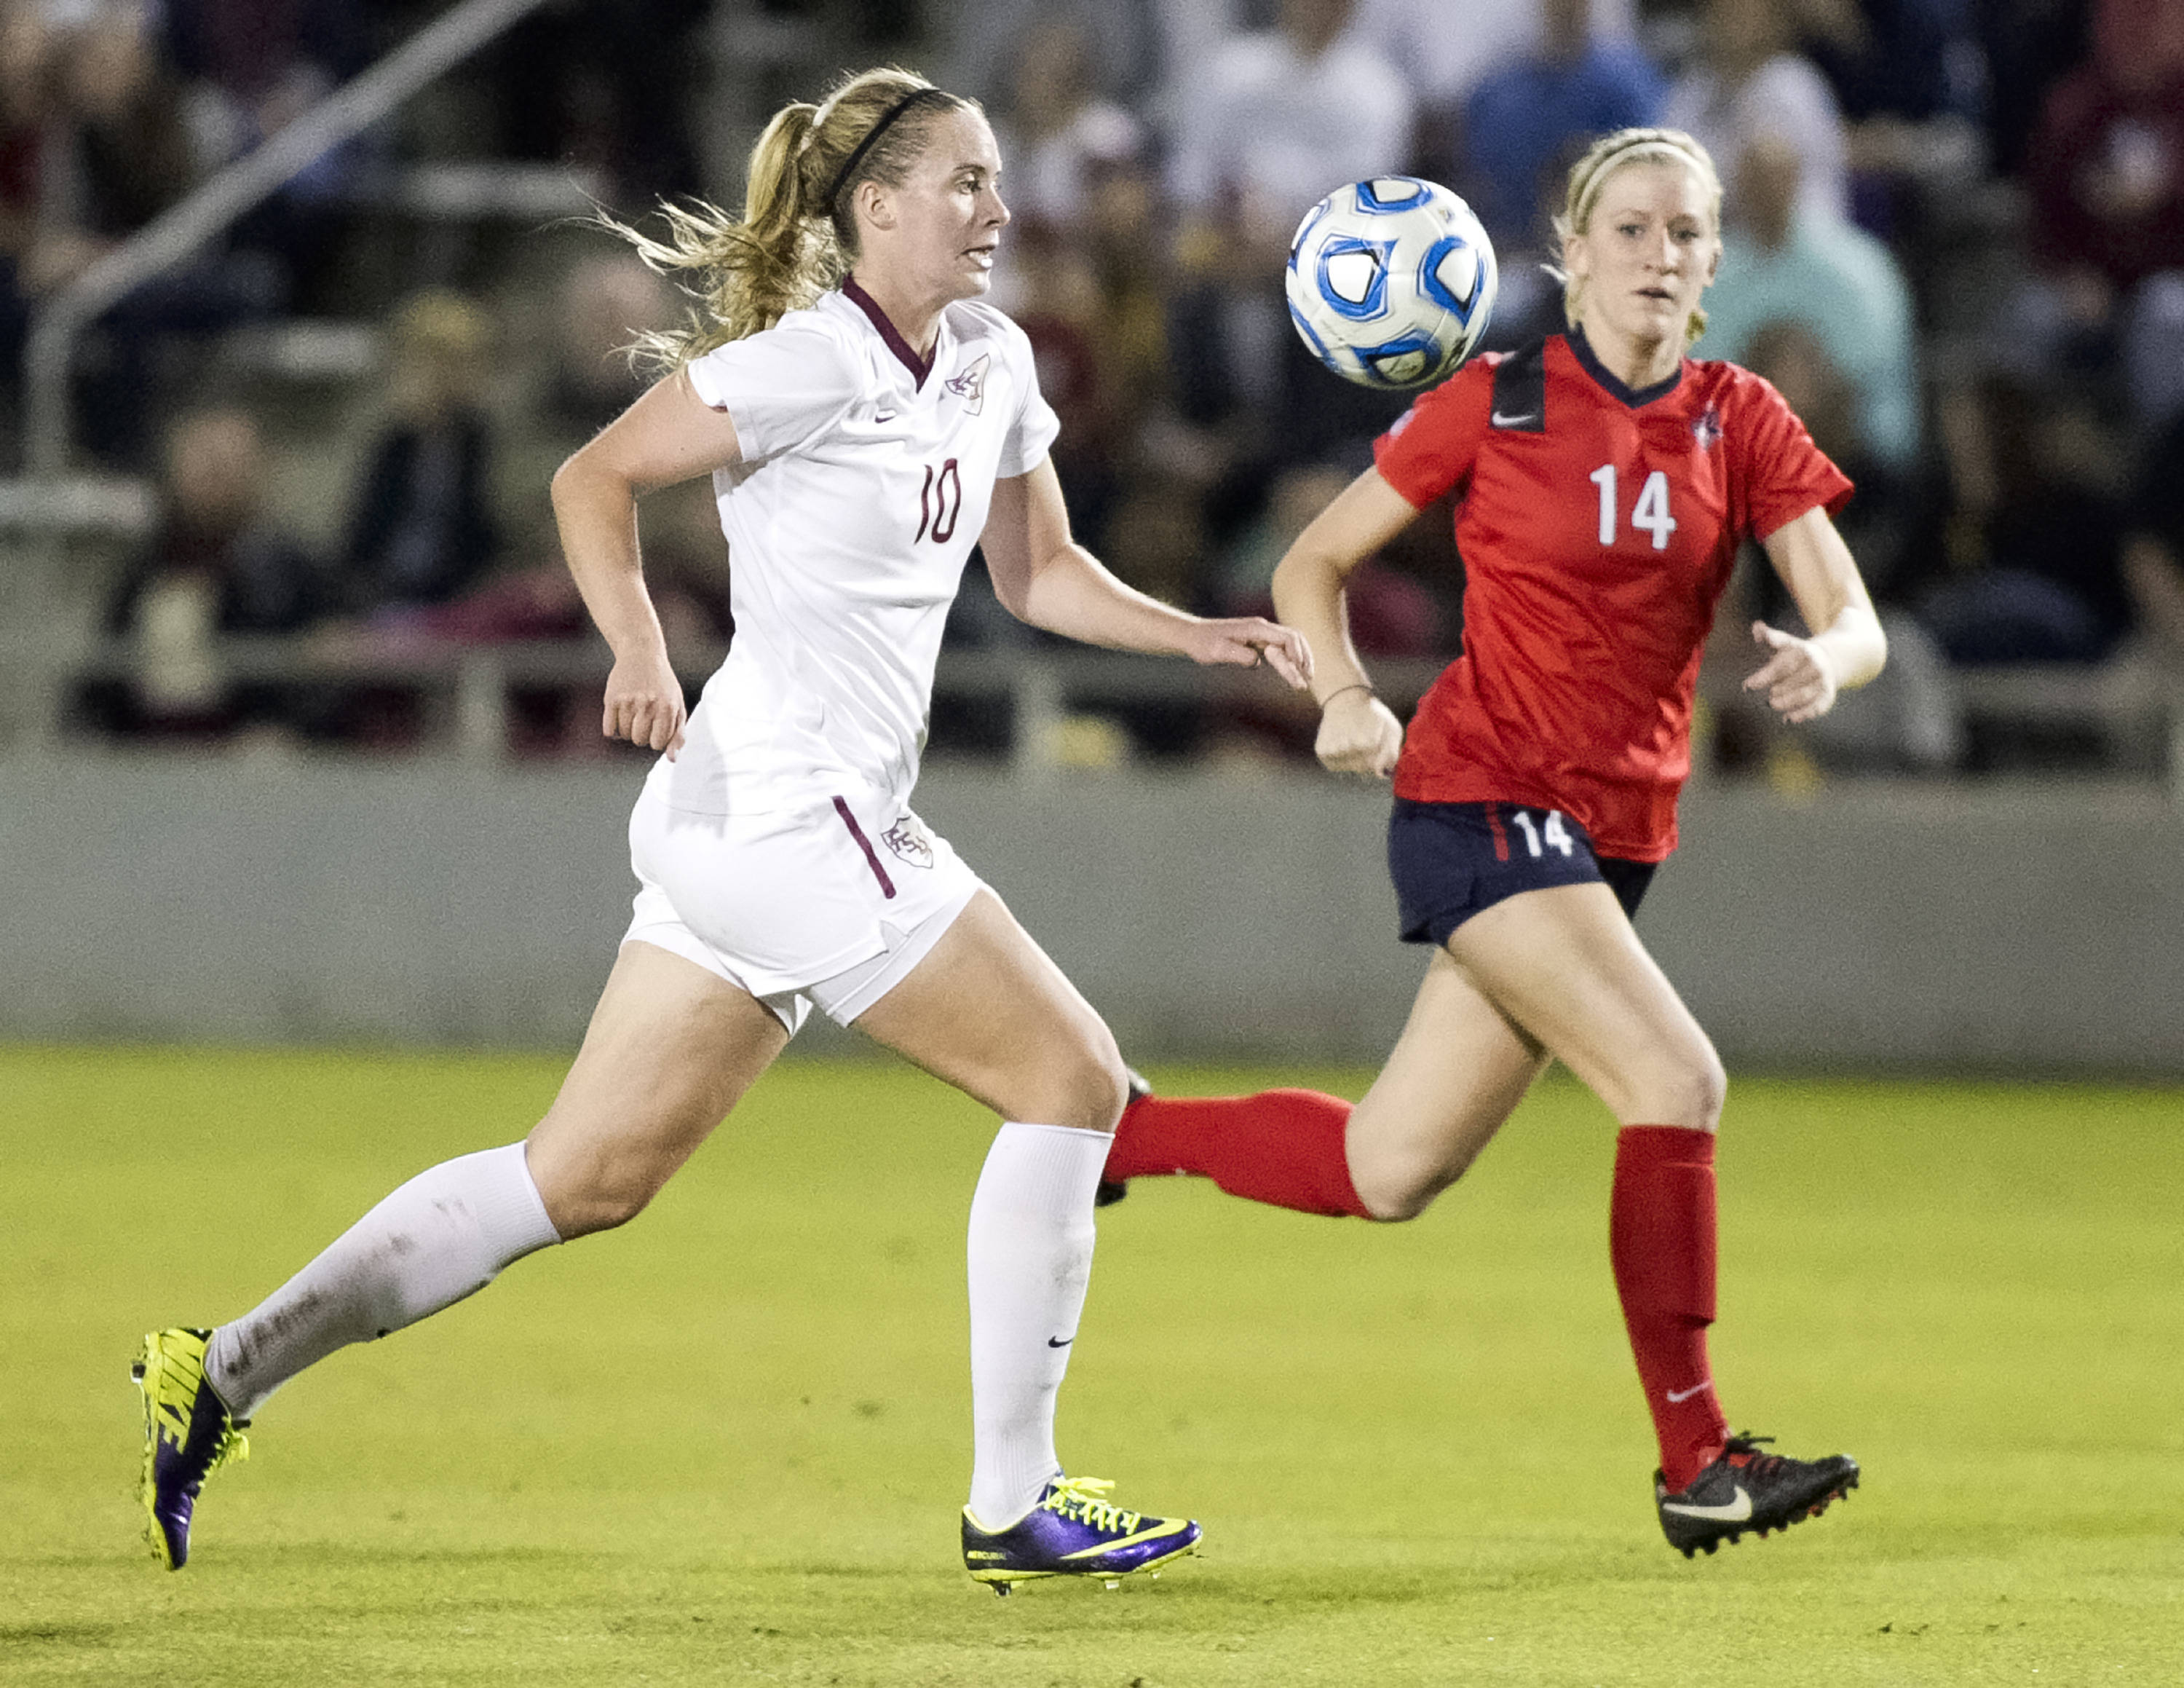 Berglind Thorvaldsdottir (10), FSU vs Ole Miss, 11-17-13, 2nd round NCAA Tournament (Photo by Steve Musco)